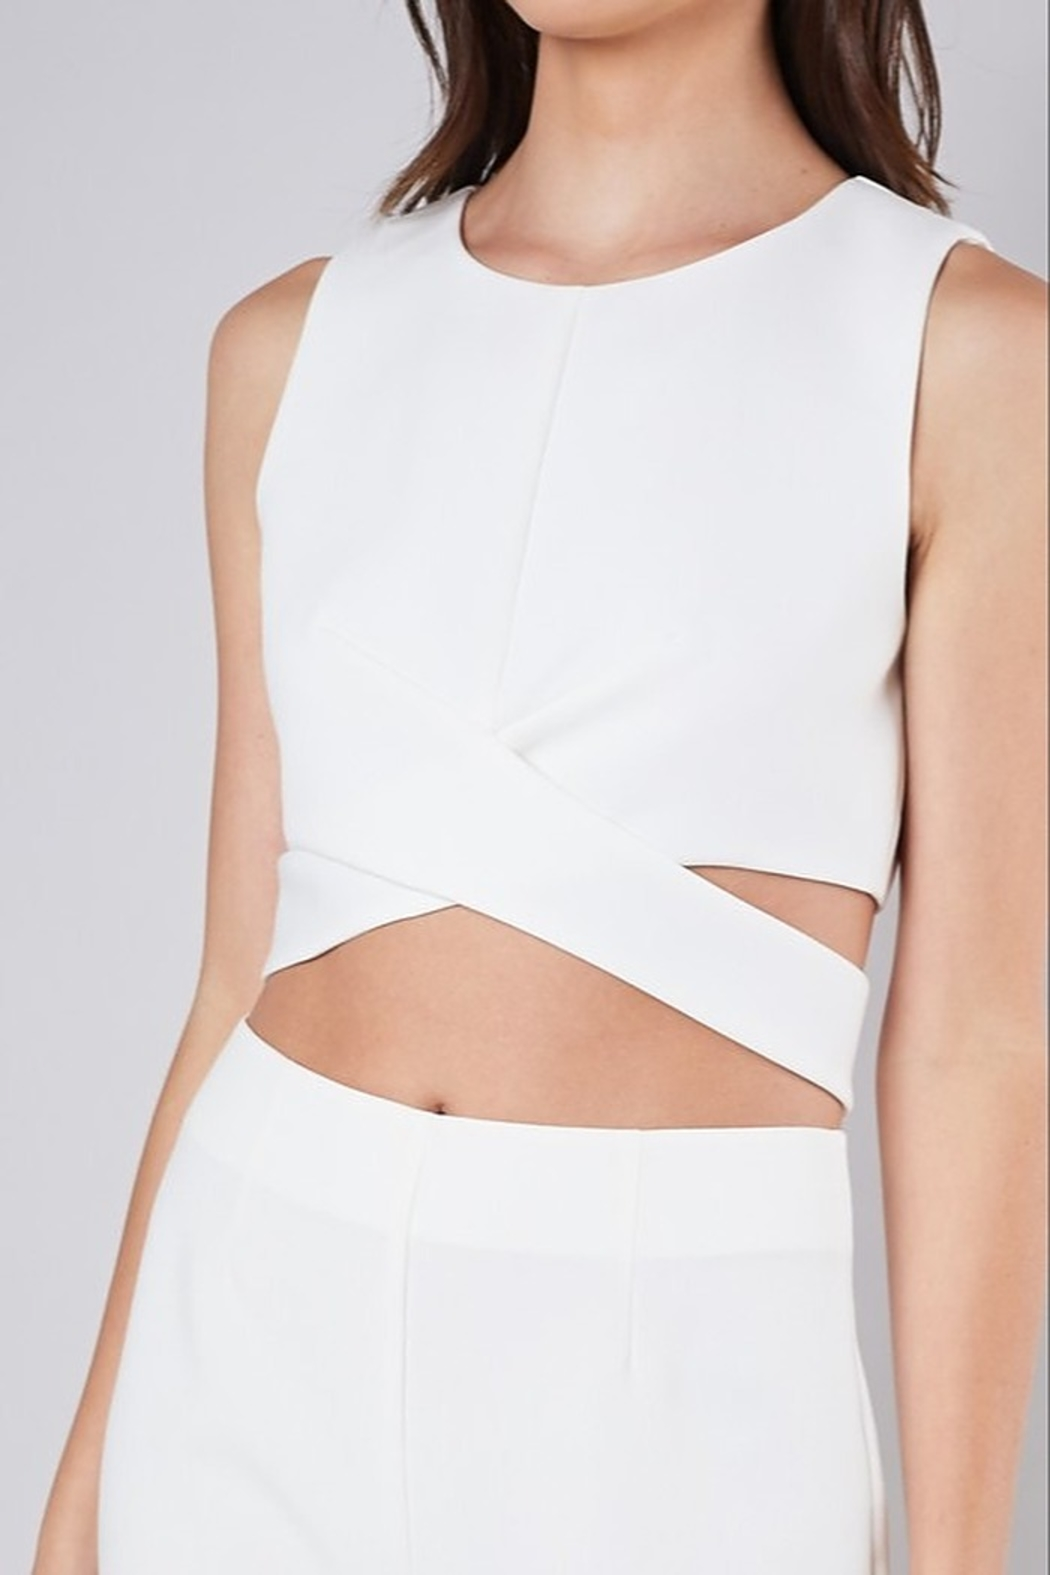 Do & Be Criss Cross Crop Top - Front Cropped Image